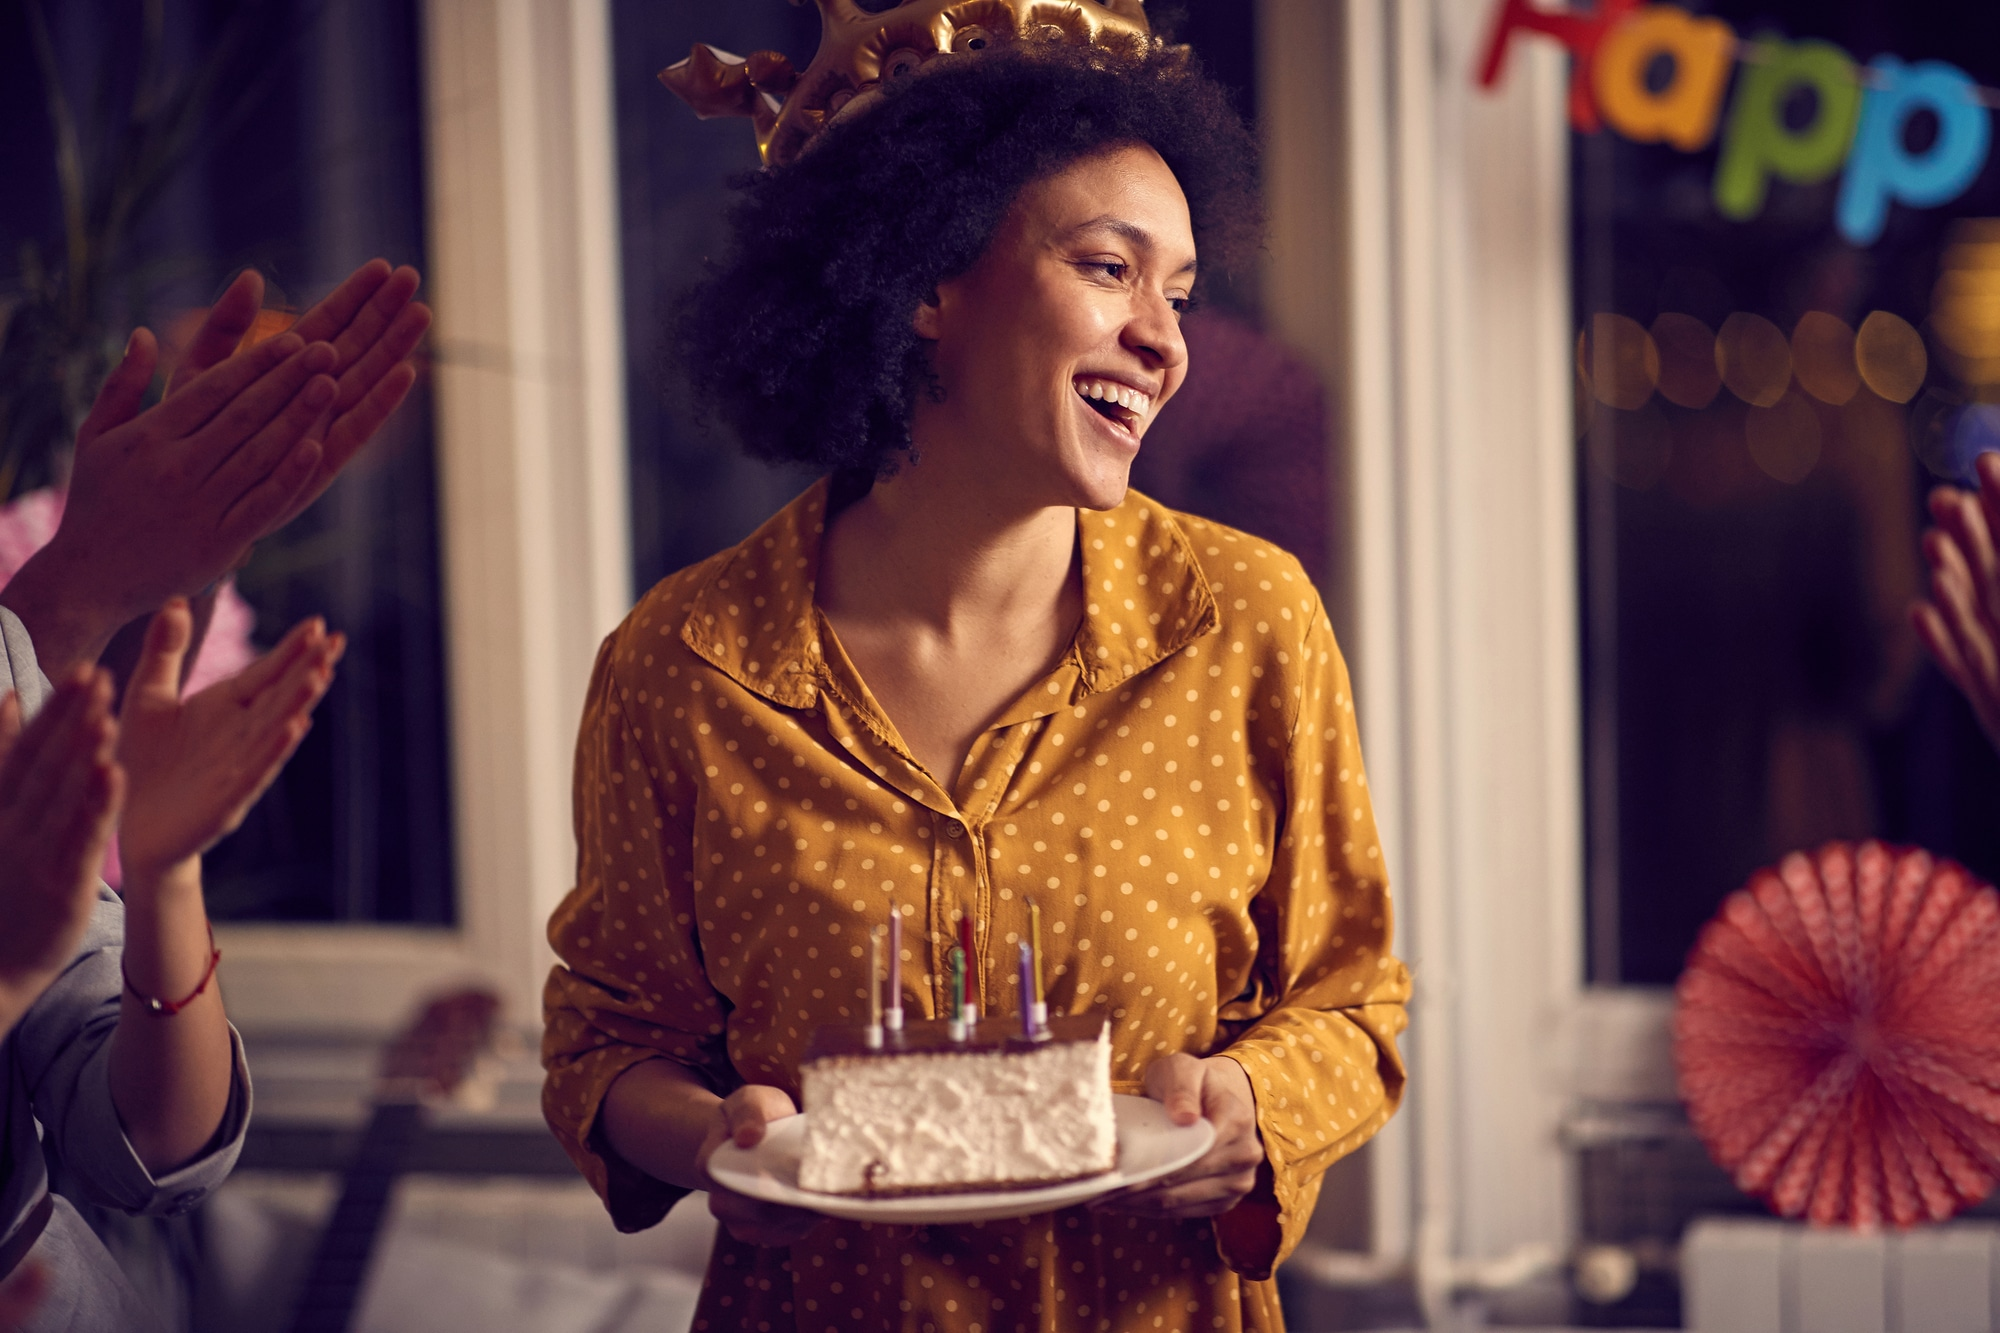 Happy young woman holding birthday cake and celebrating Birthday